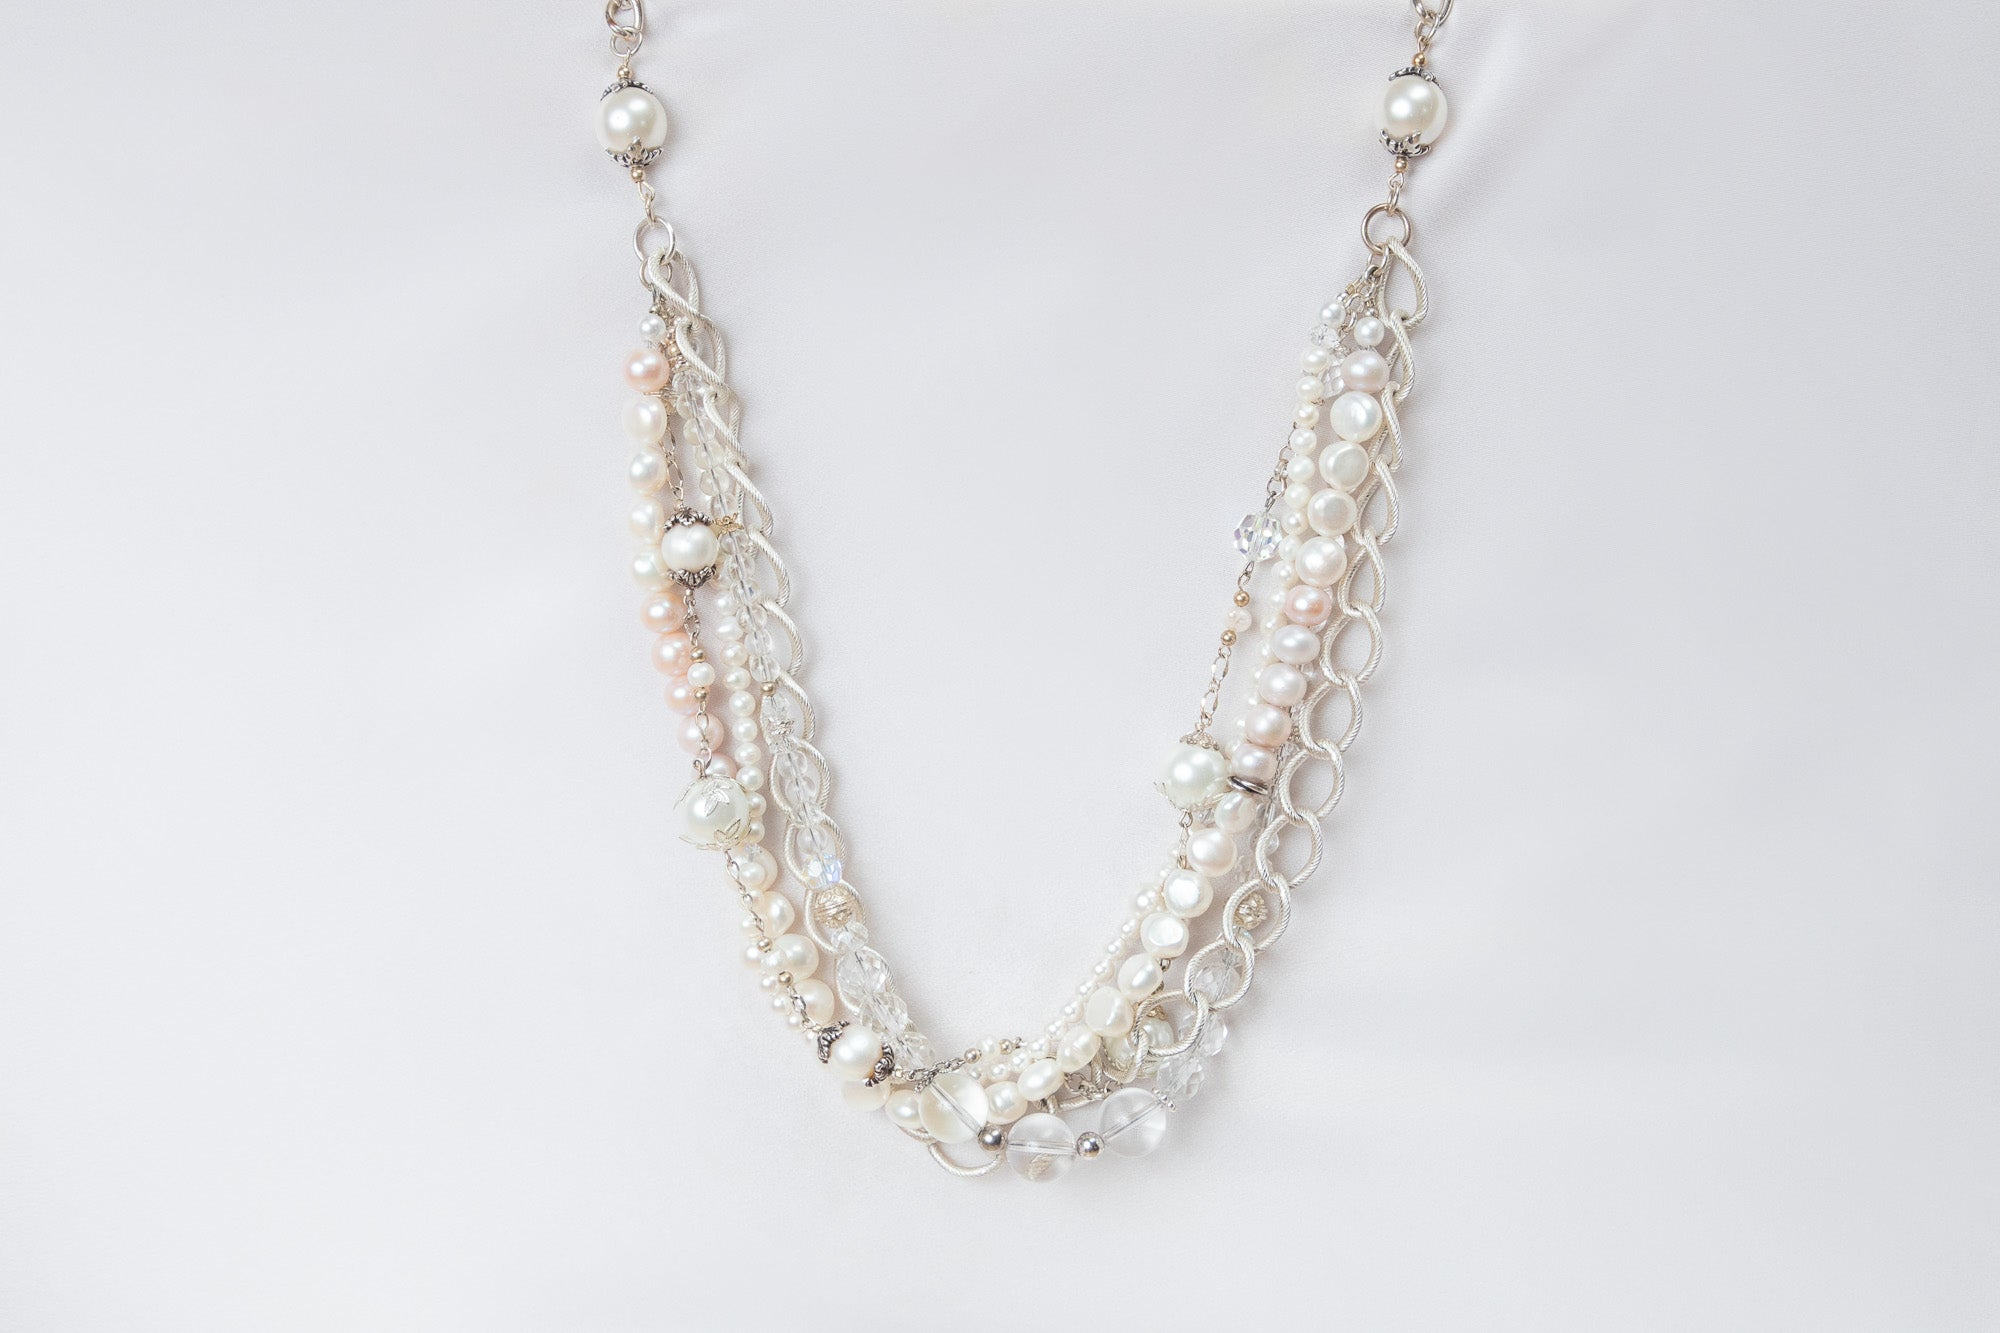 a Carolily Finery statement necklace made from genuine crystal quartz gemstones, freshwater pearls, sterling silver and Swarovski crystal pearls